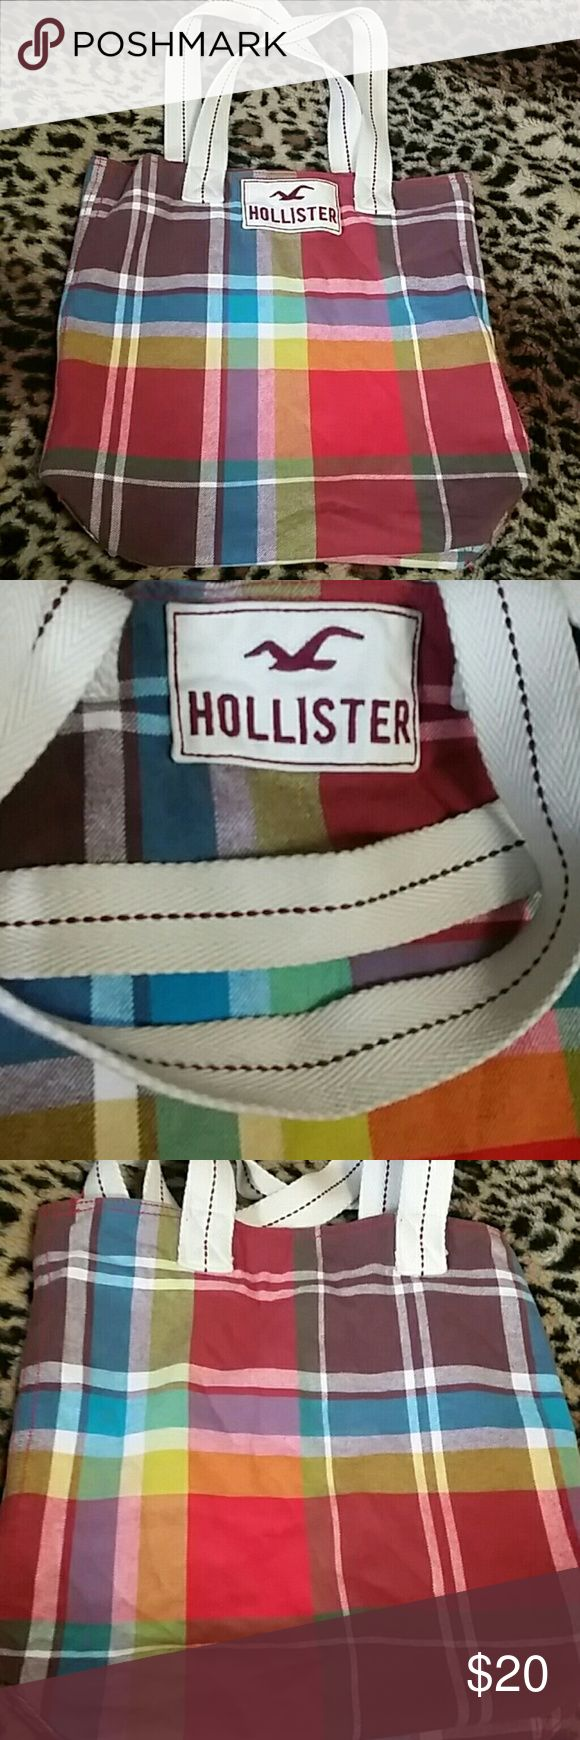 Hollister Tote Bag Really great condition. Soft material with plain design. Hollister Bags Totes